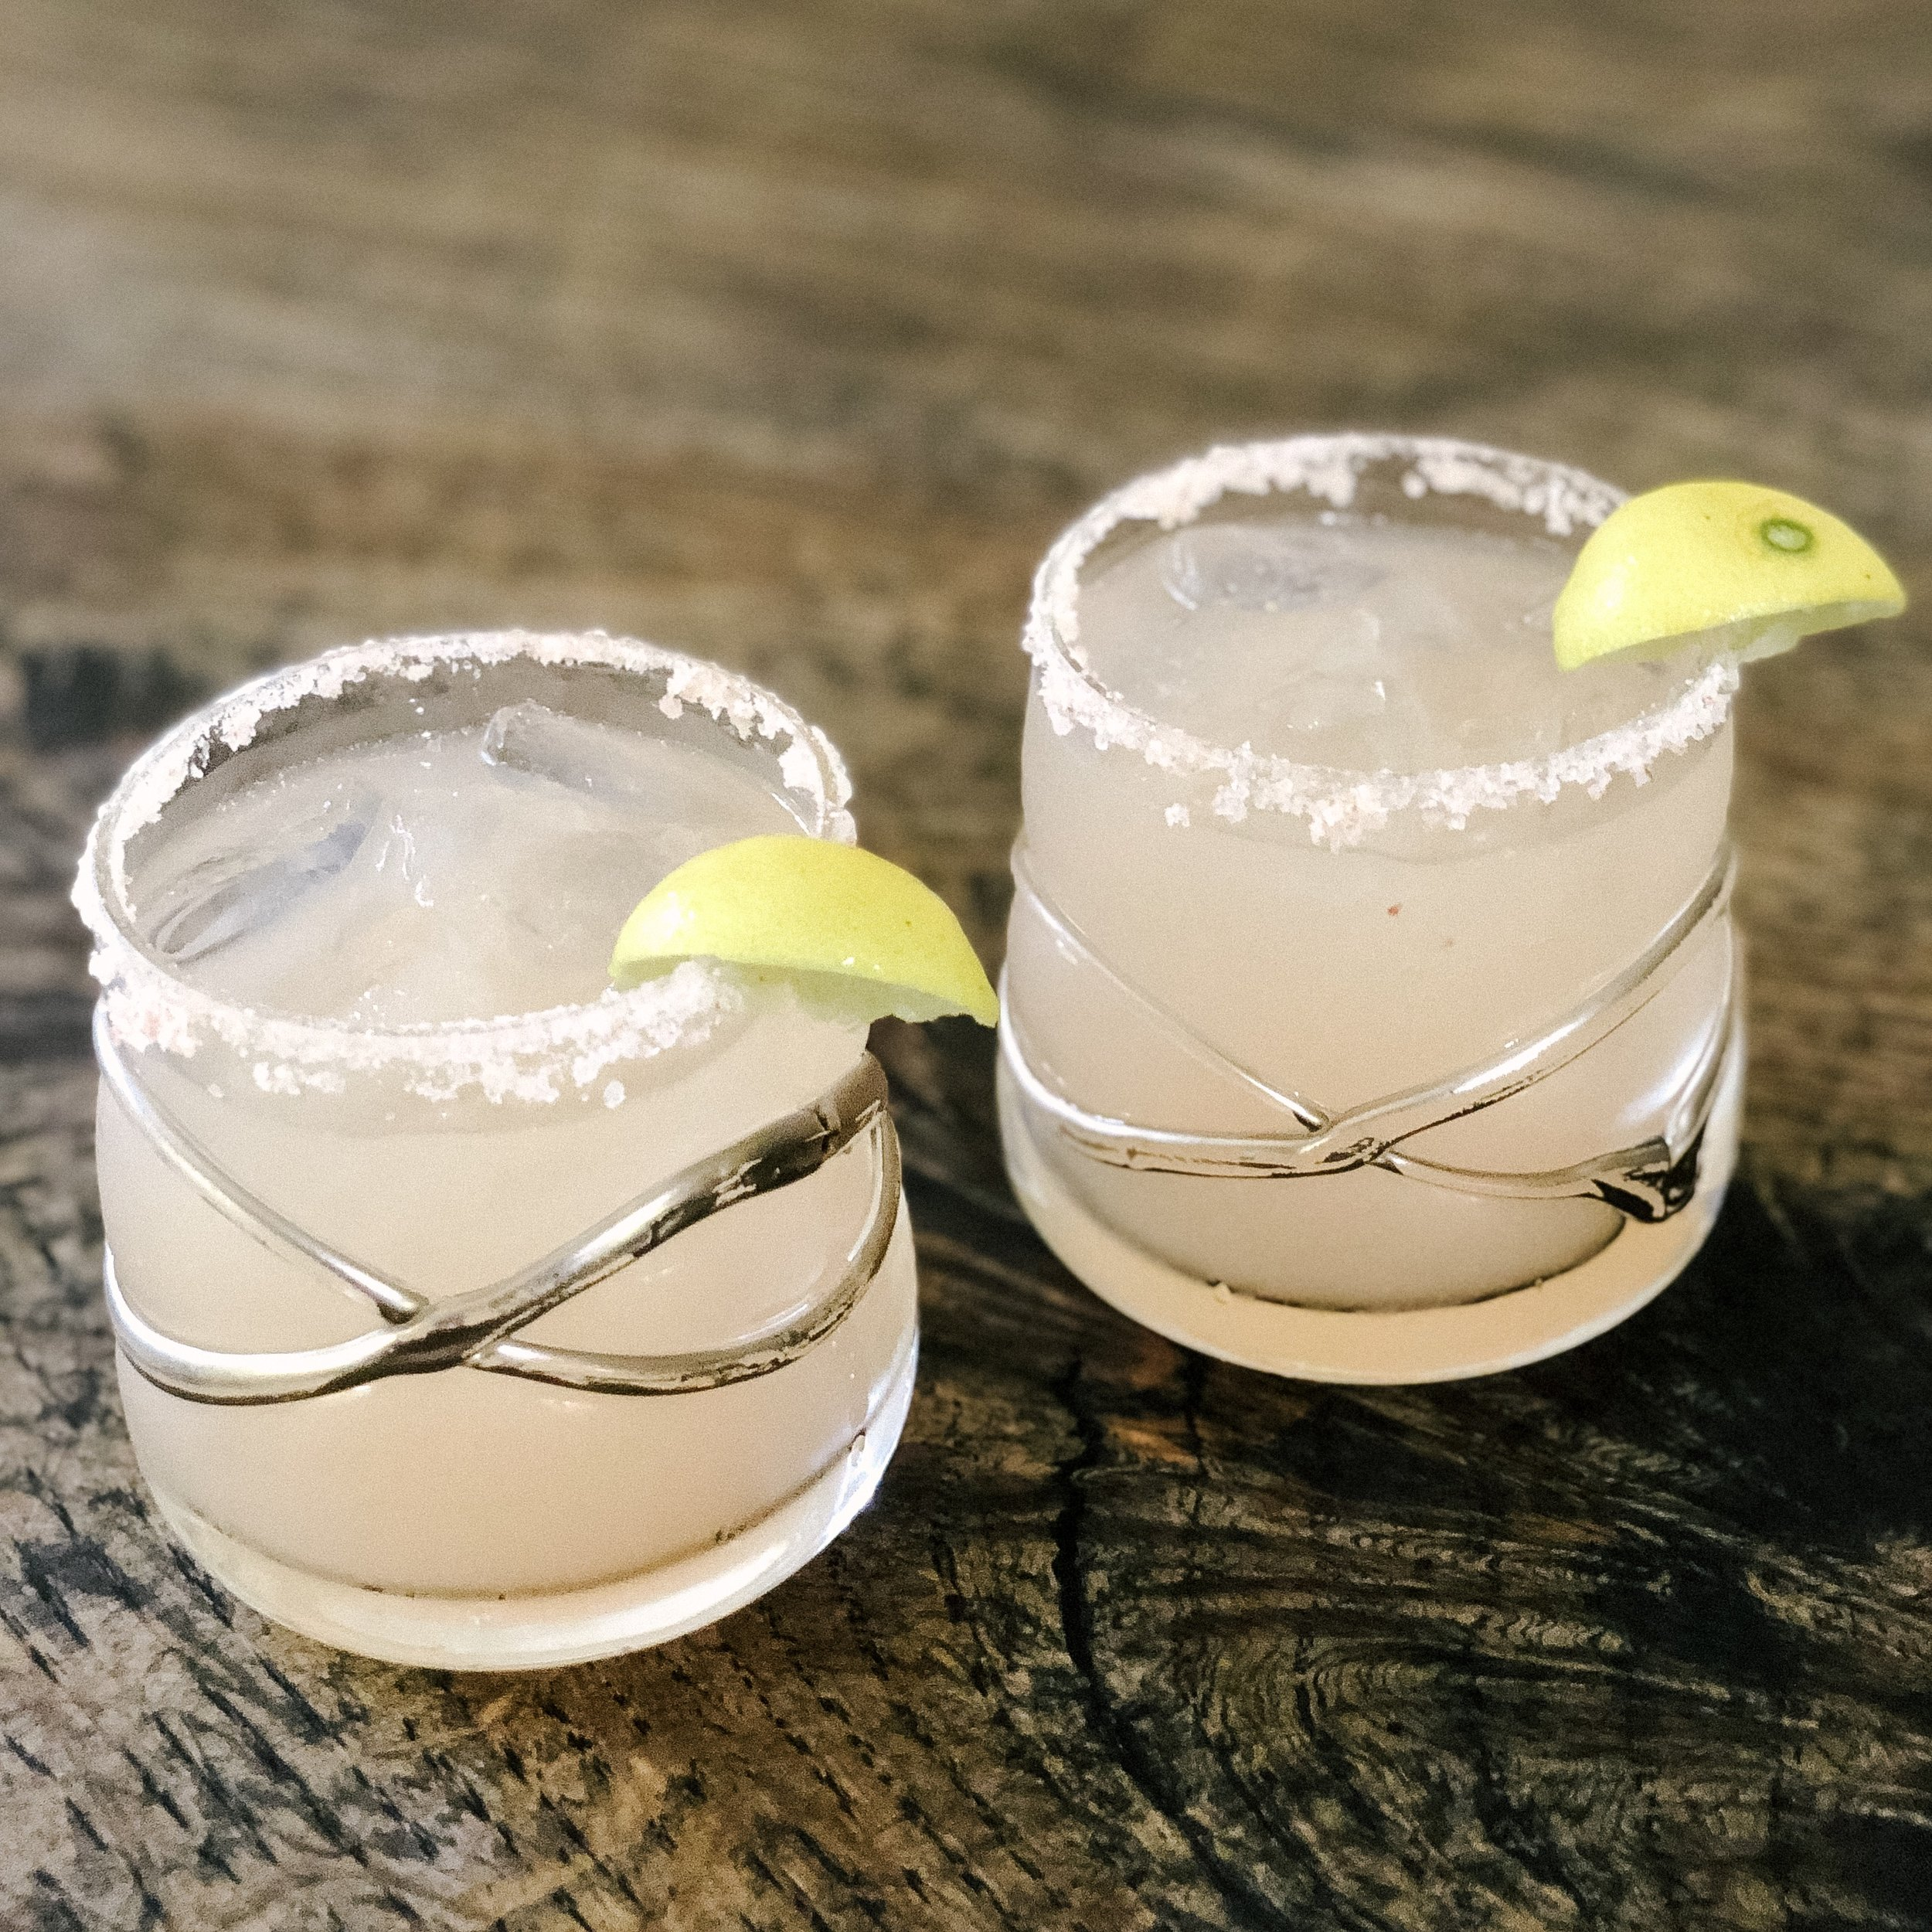 Healthy Margarita! - * Salt rim with Himalayan pink salt* 1 shot of tequila* 1 part Simply Limeade juice* 1 part Simply Grapefruit juice* Fresh lime